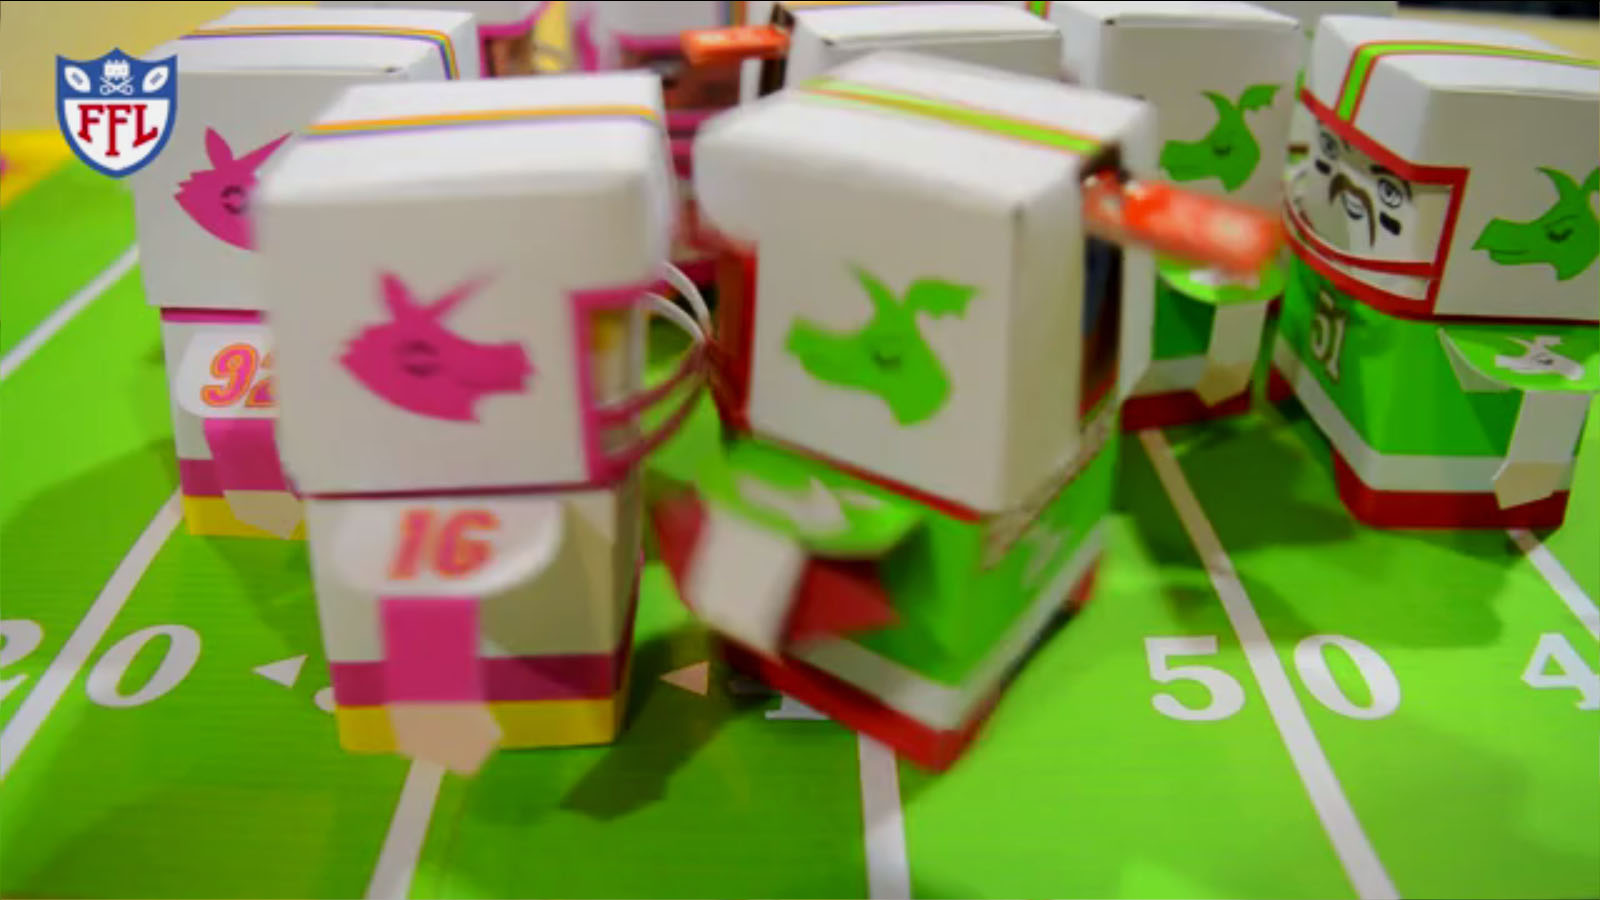 Fizzbit Football Game Made from Paper